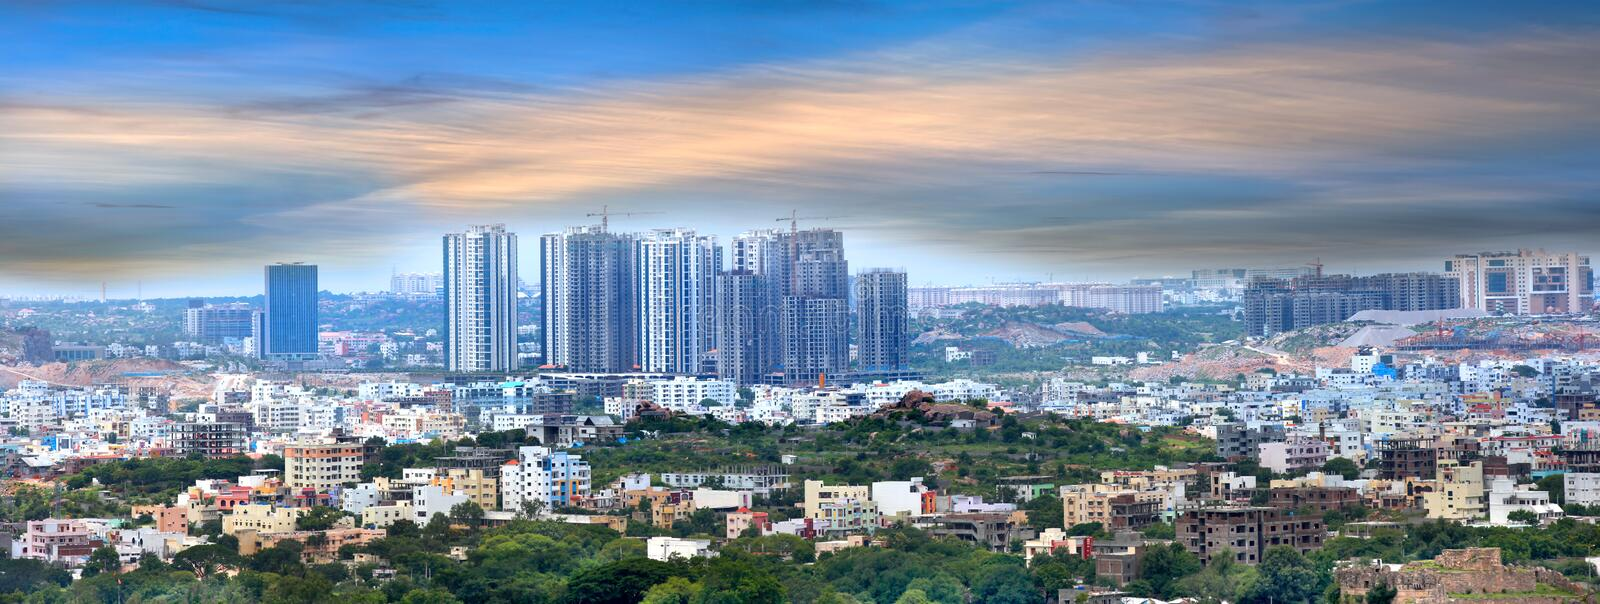 Hyderabad Financial District Editorial Stock Image